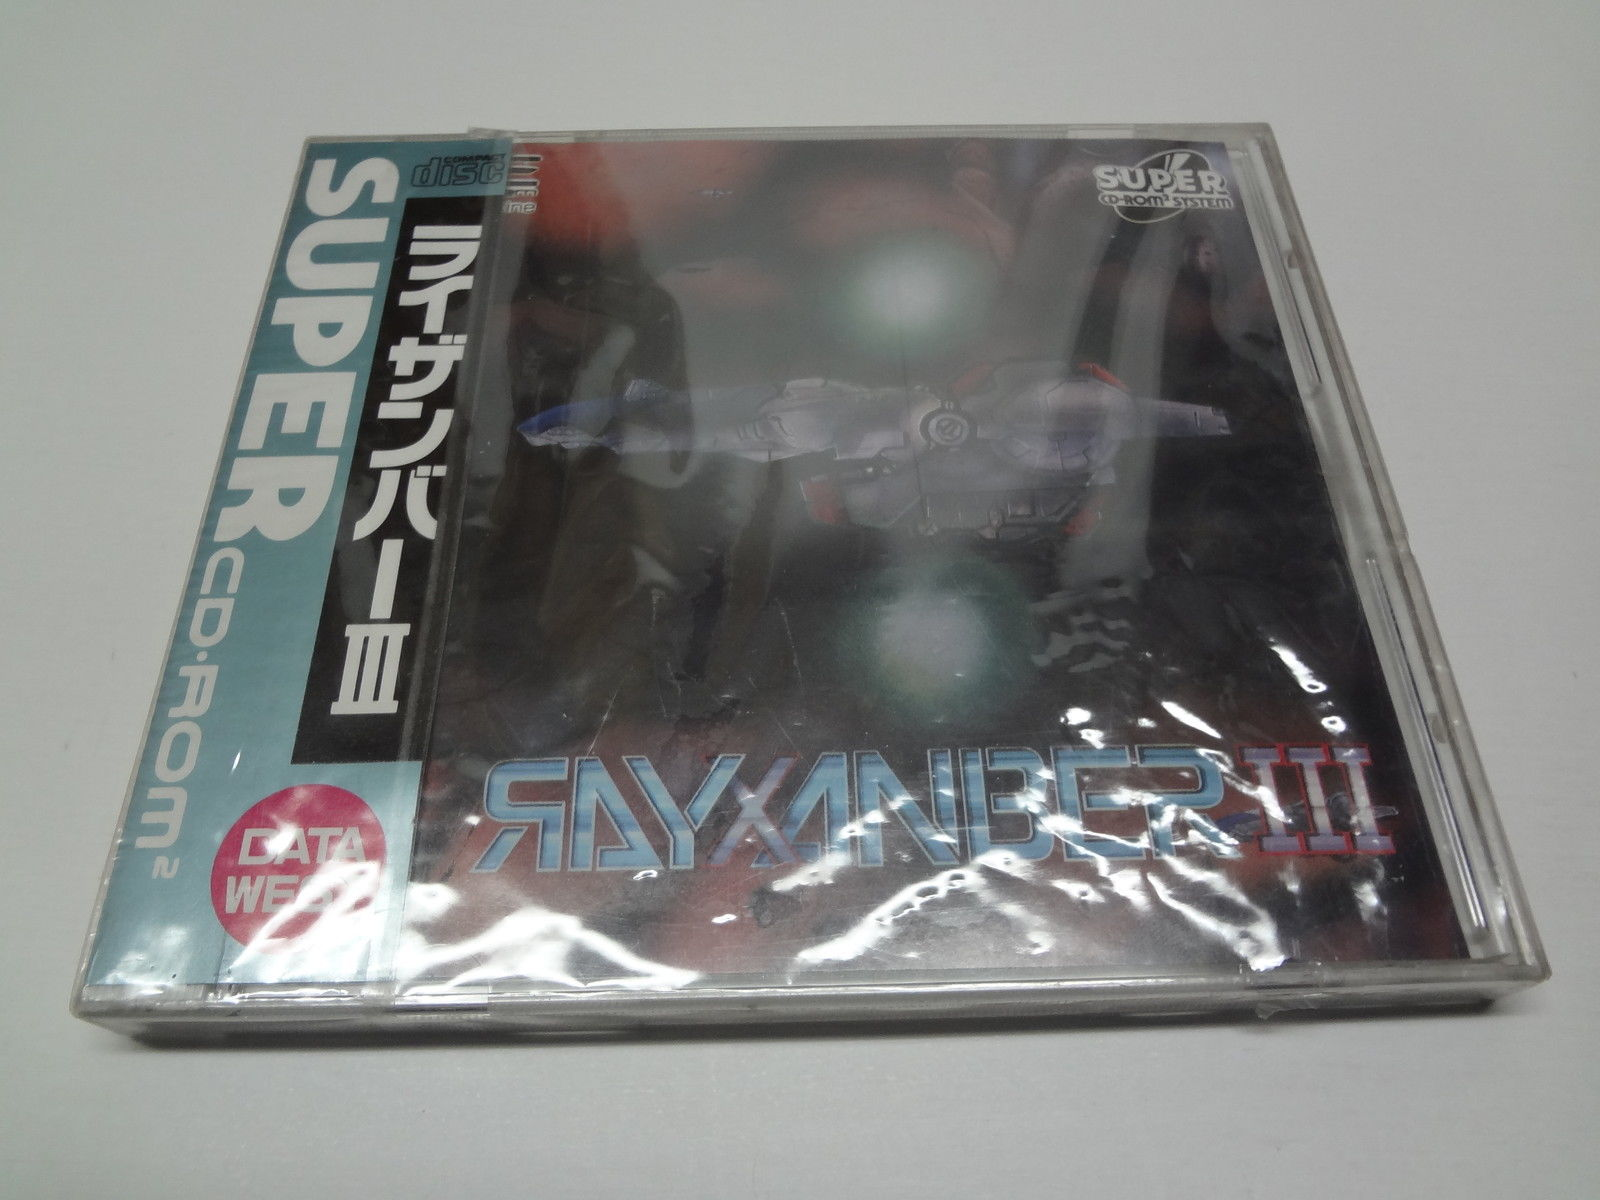 Ray X Anber III NEC PC Engine CD-Rom 2 NEW